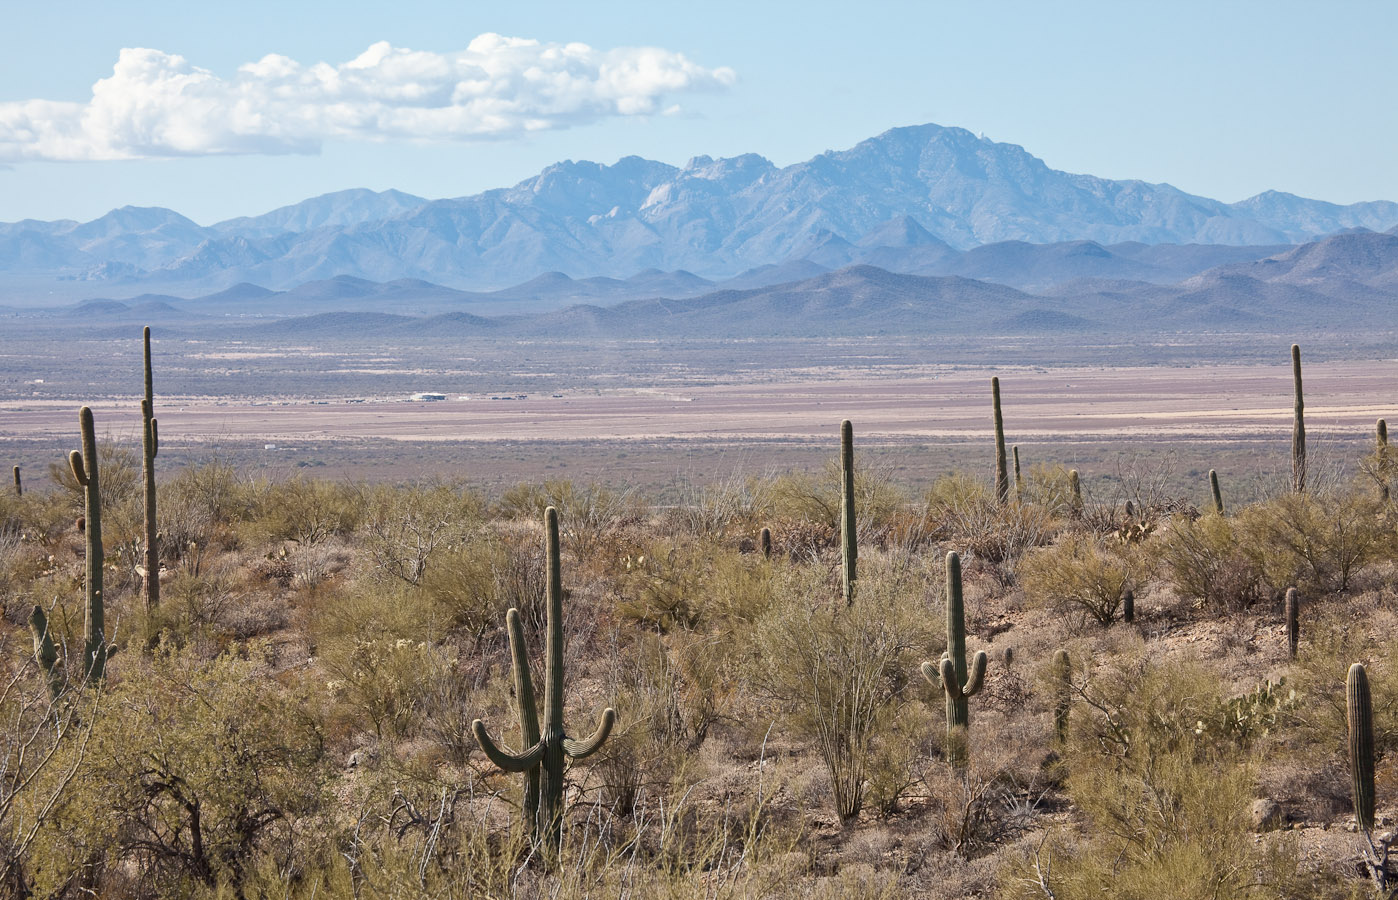 011_Saguaros with mountains in distance__7087`1001141023.jpg